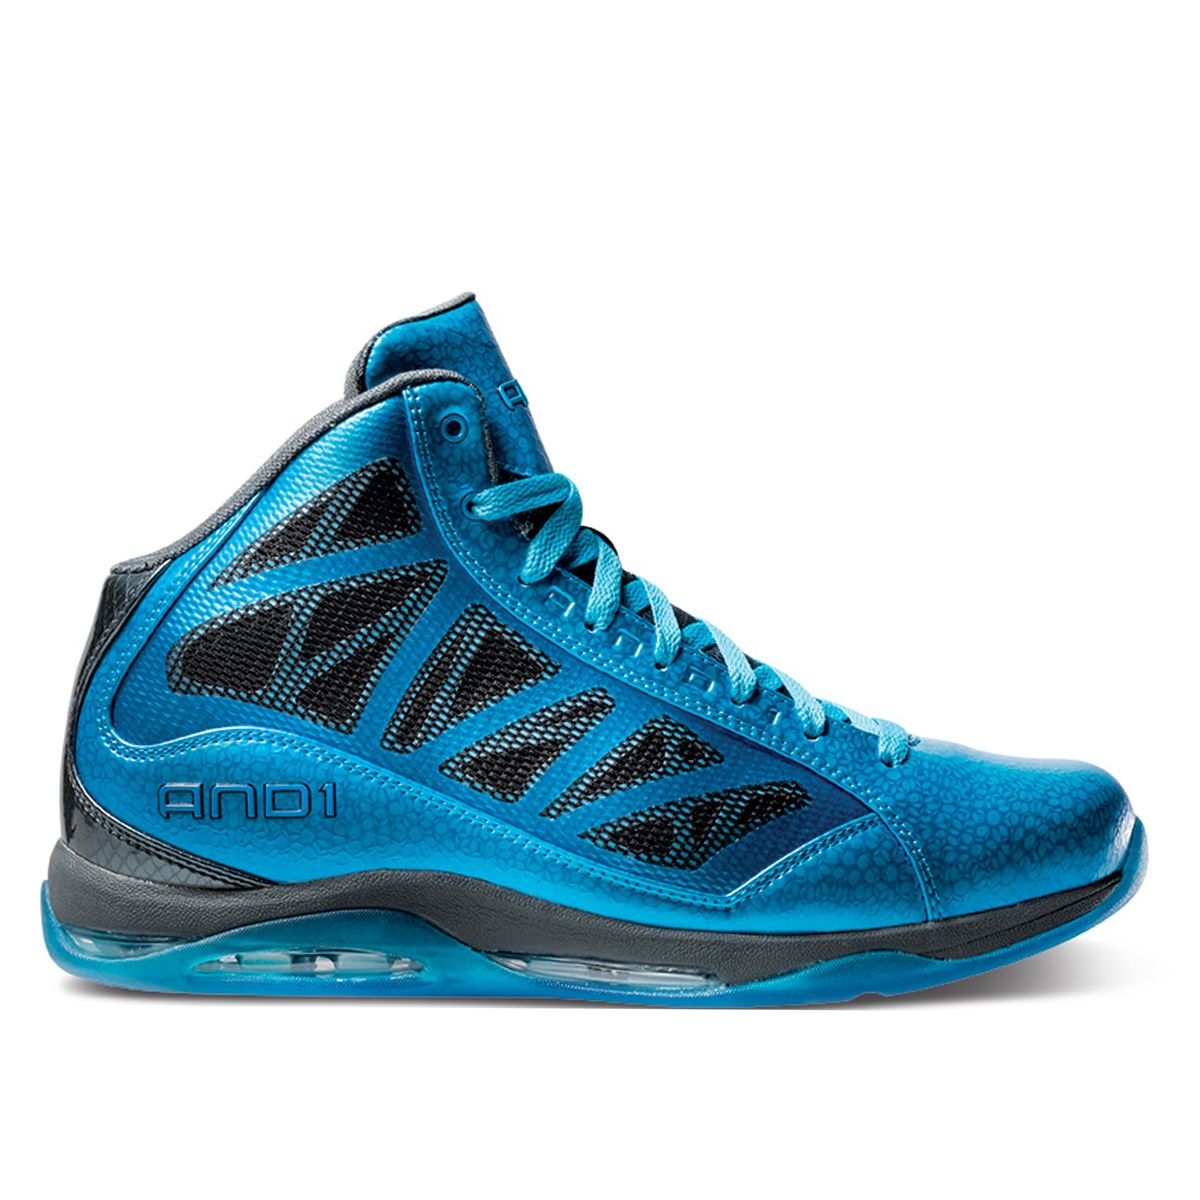 28579c8c7694 AND1 Entourage Mid in electrifying blue